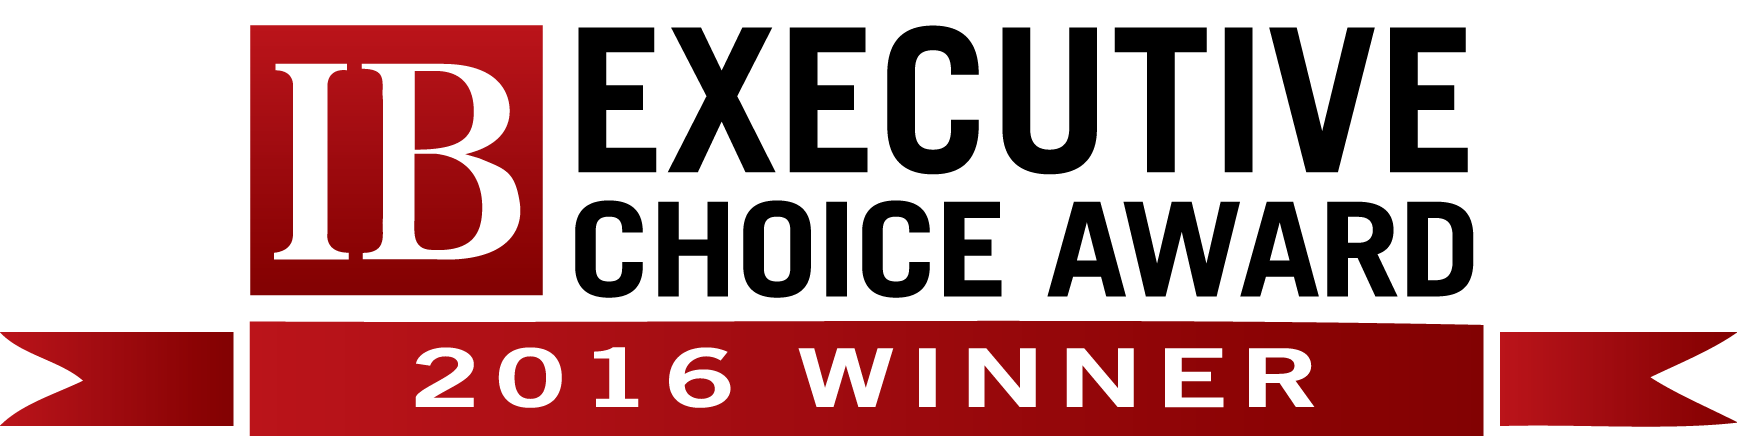 InBusiness Executive Choice Award 2016 - Social Media Consulting Company - Spencer X Smith